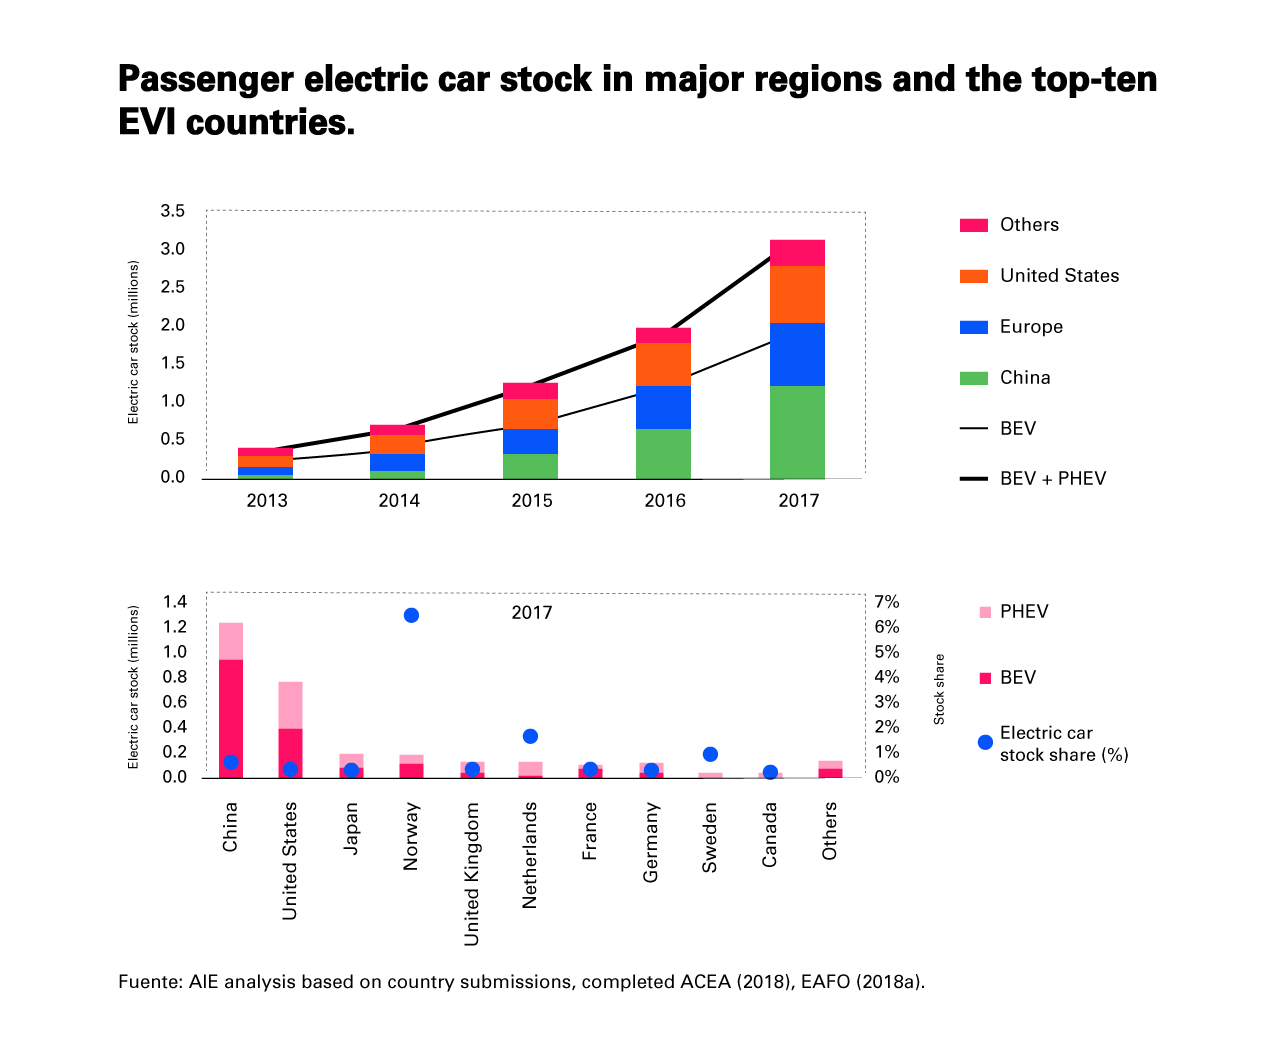 Stock of electric passenger cars in the most important regions and the top ten of EVI countries.